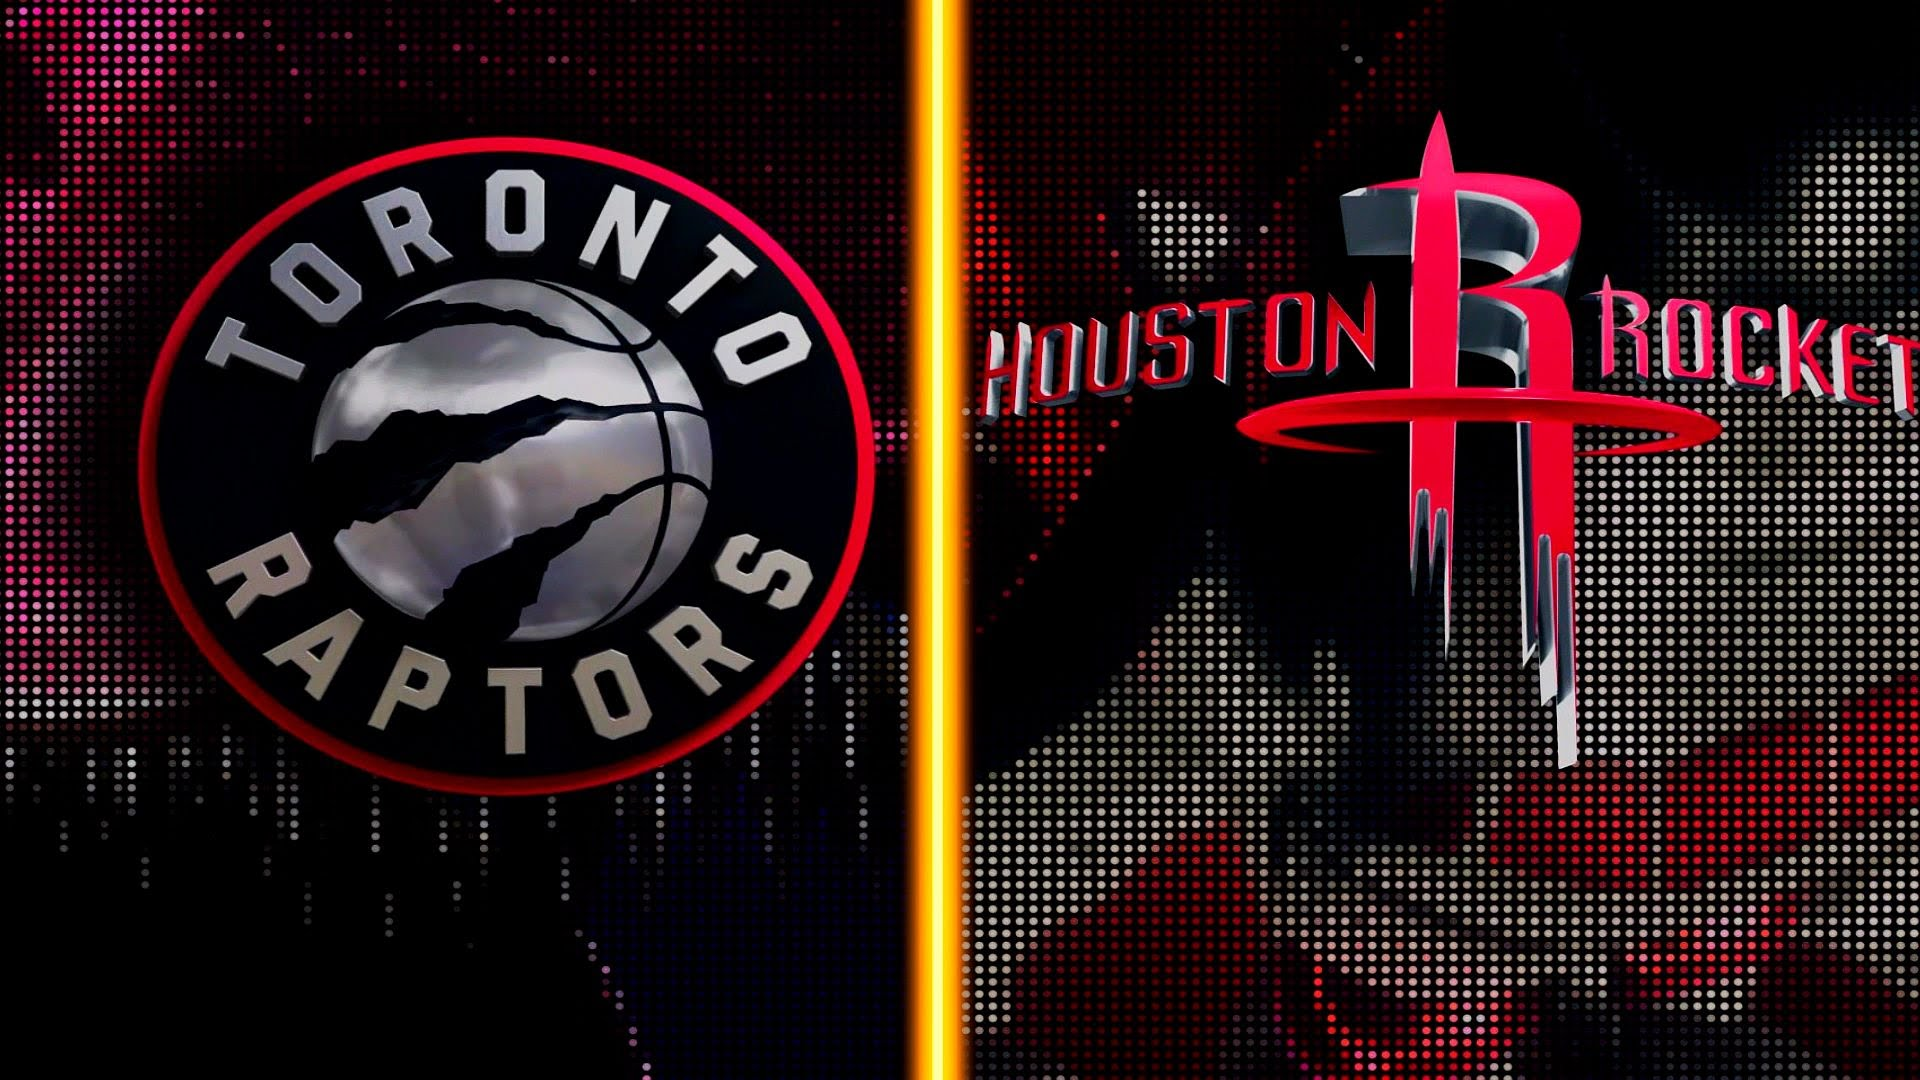 Will The Rockets And The Raptors End The NBA Finals Monotony?